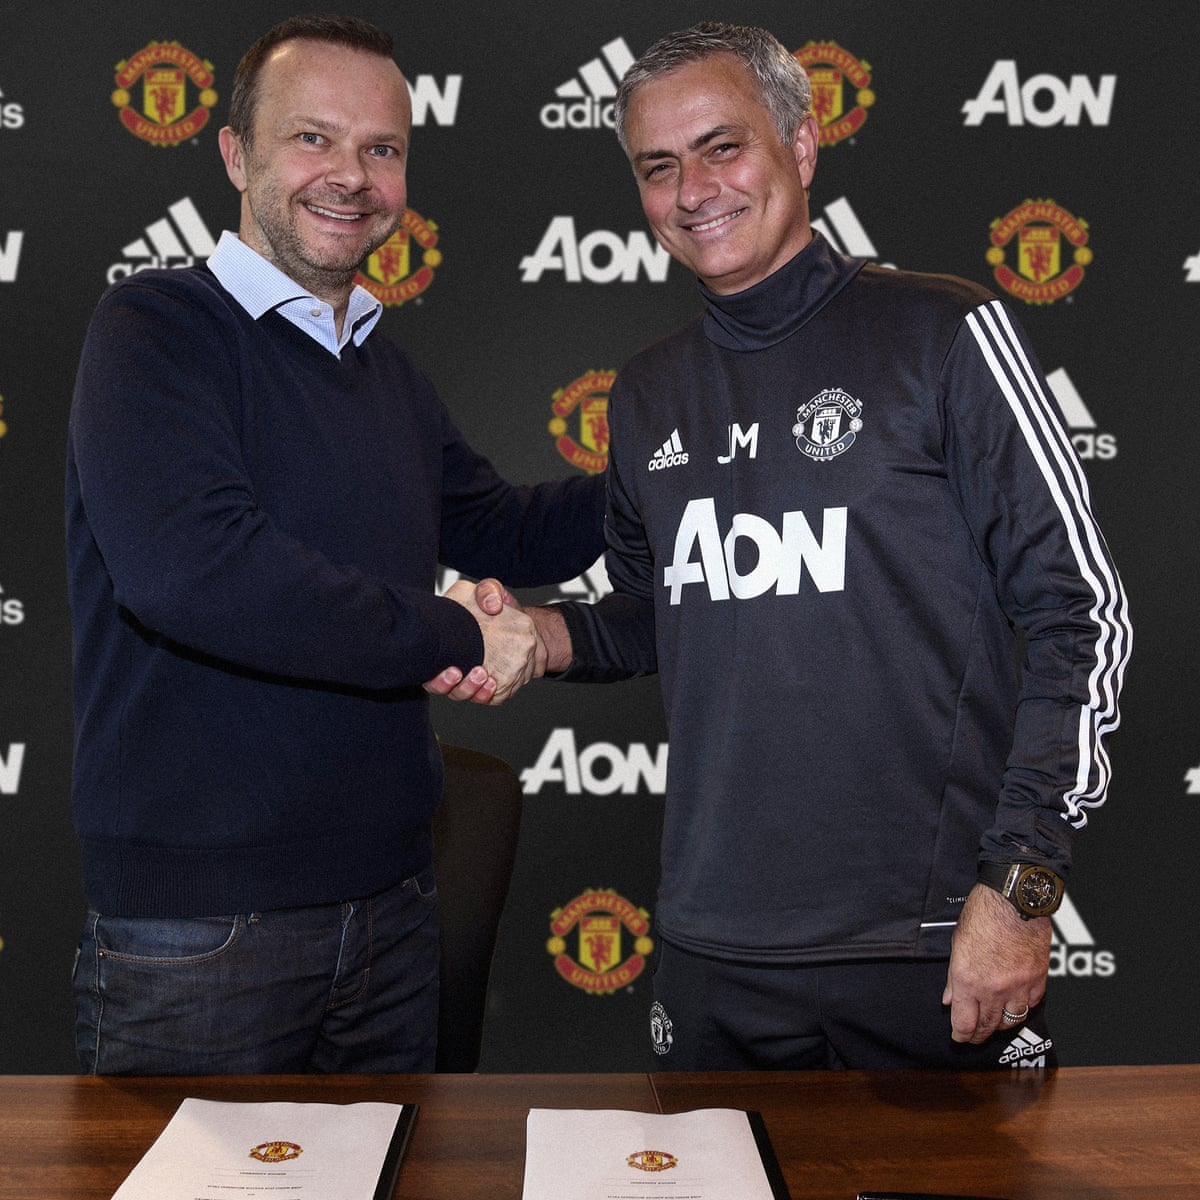 Jose Mourinho Signs New Deal But Confusion Reigns Over Sanchez Football The Guardian